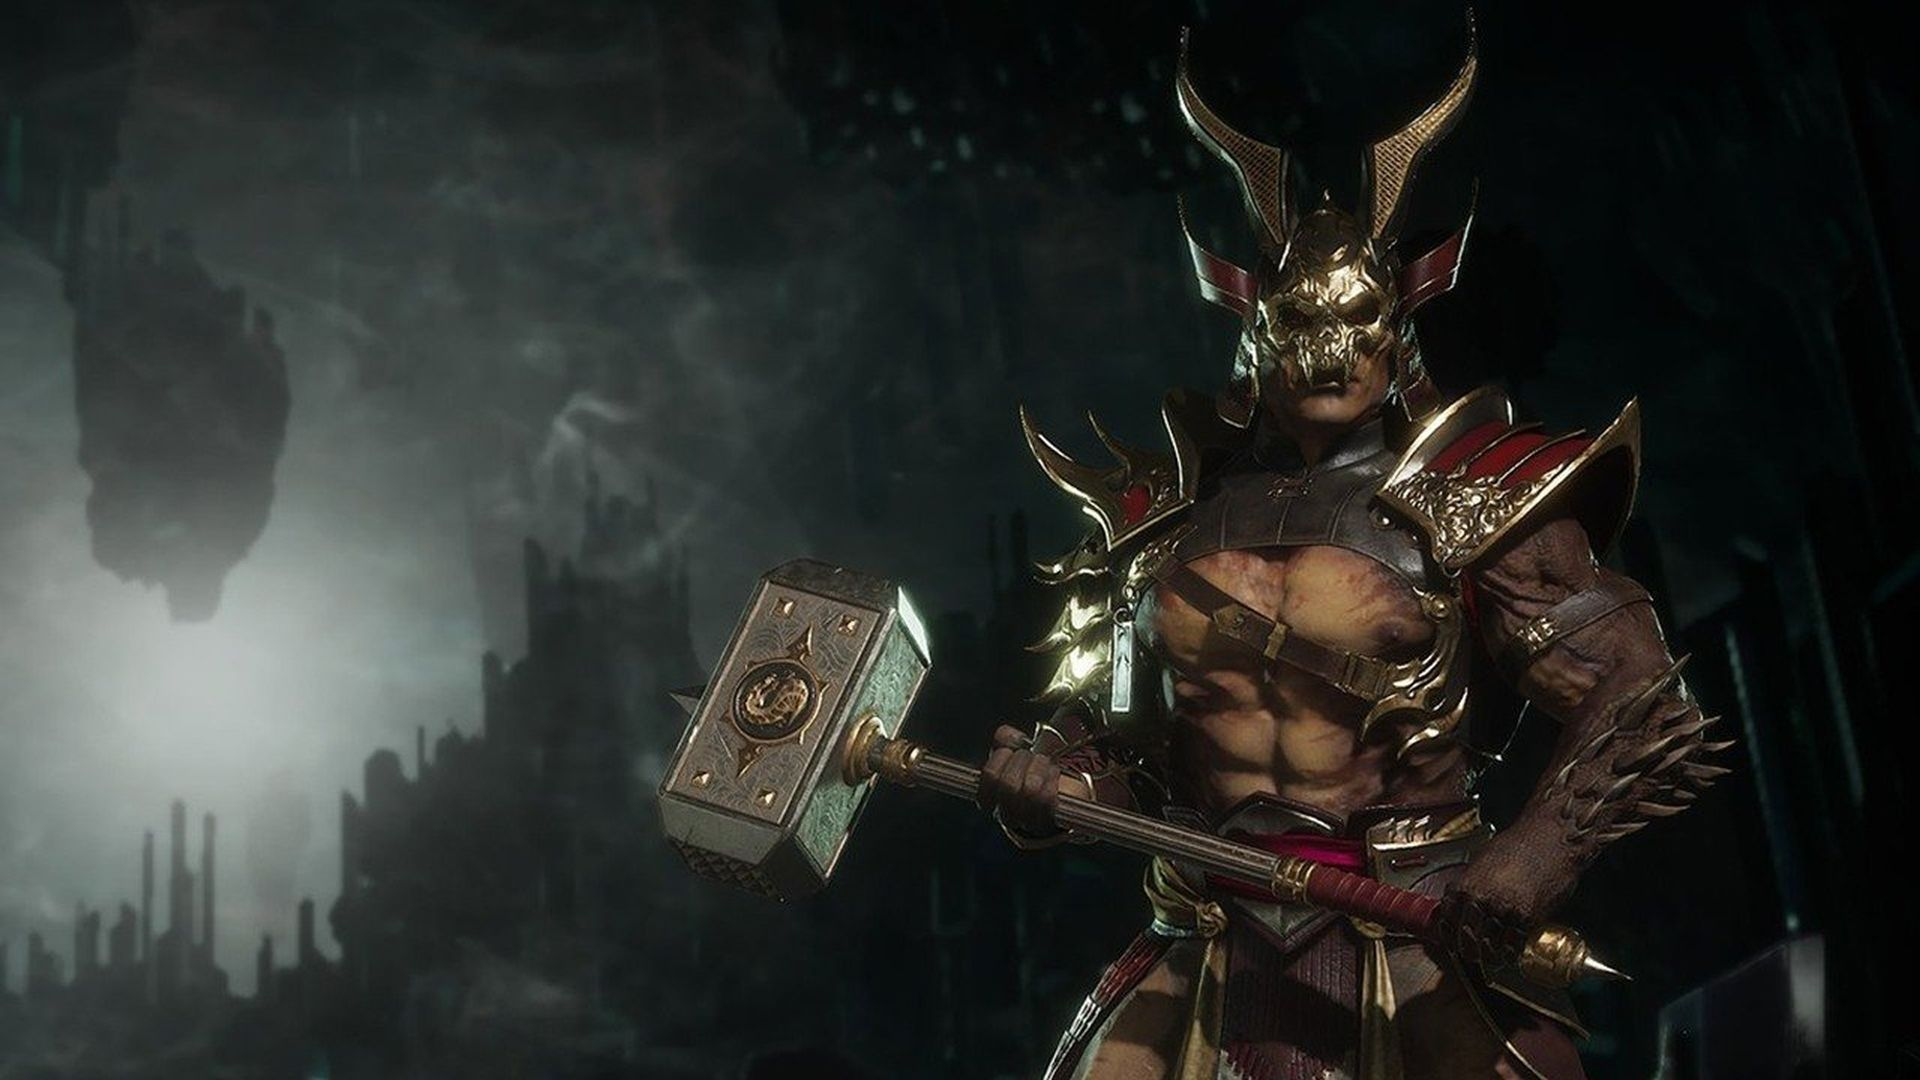 Mortal Kombat 11 Krypt Guide – All Key Item Locations And Puzzle